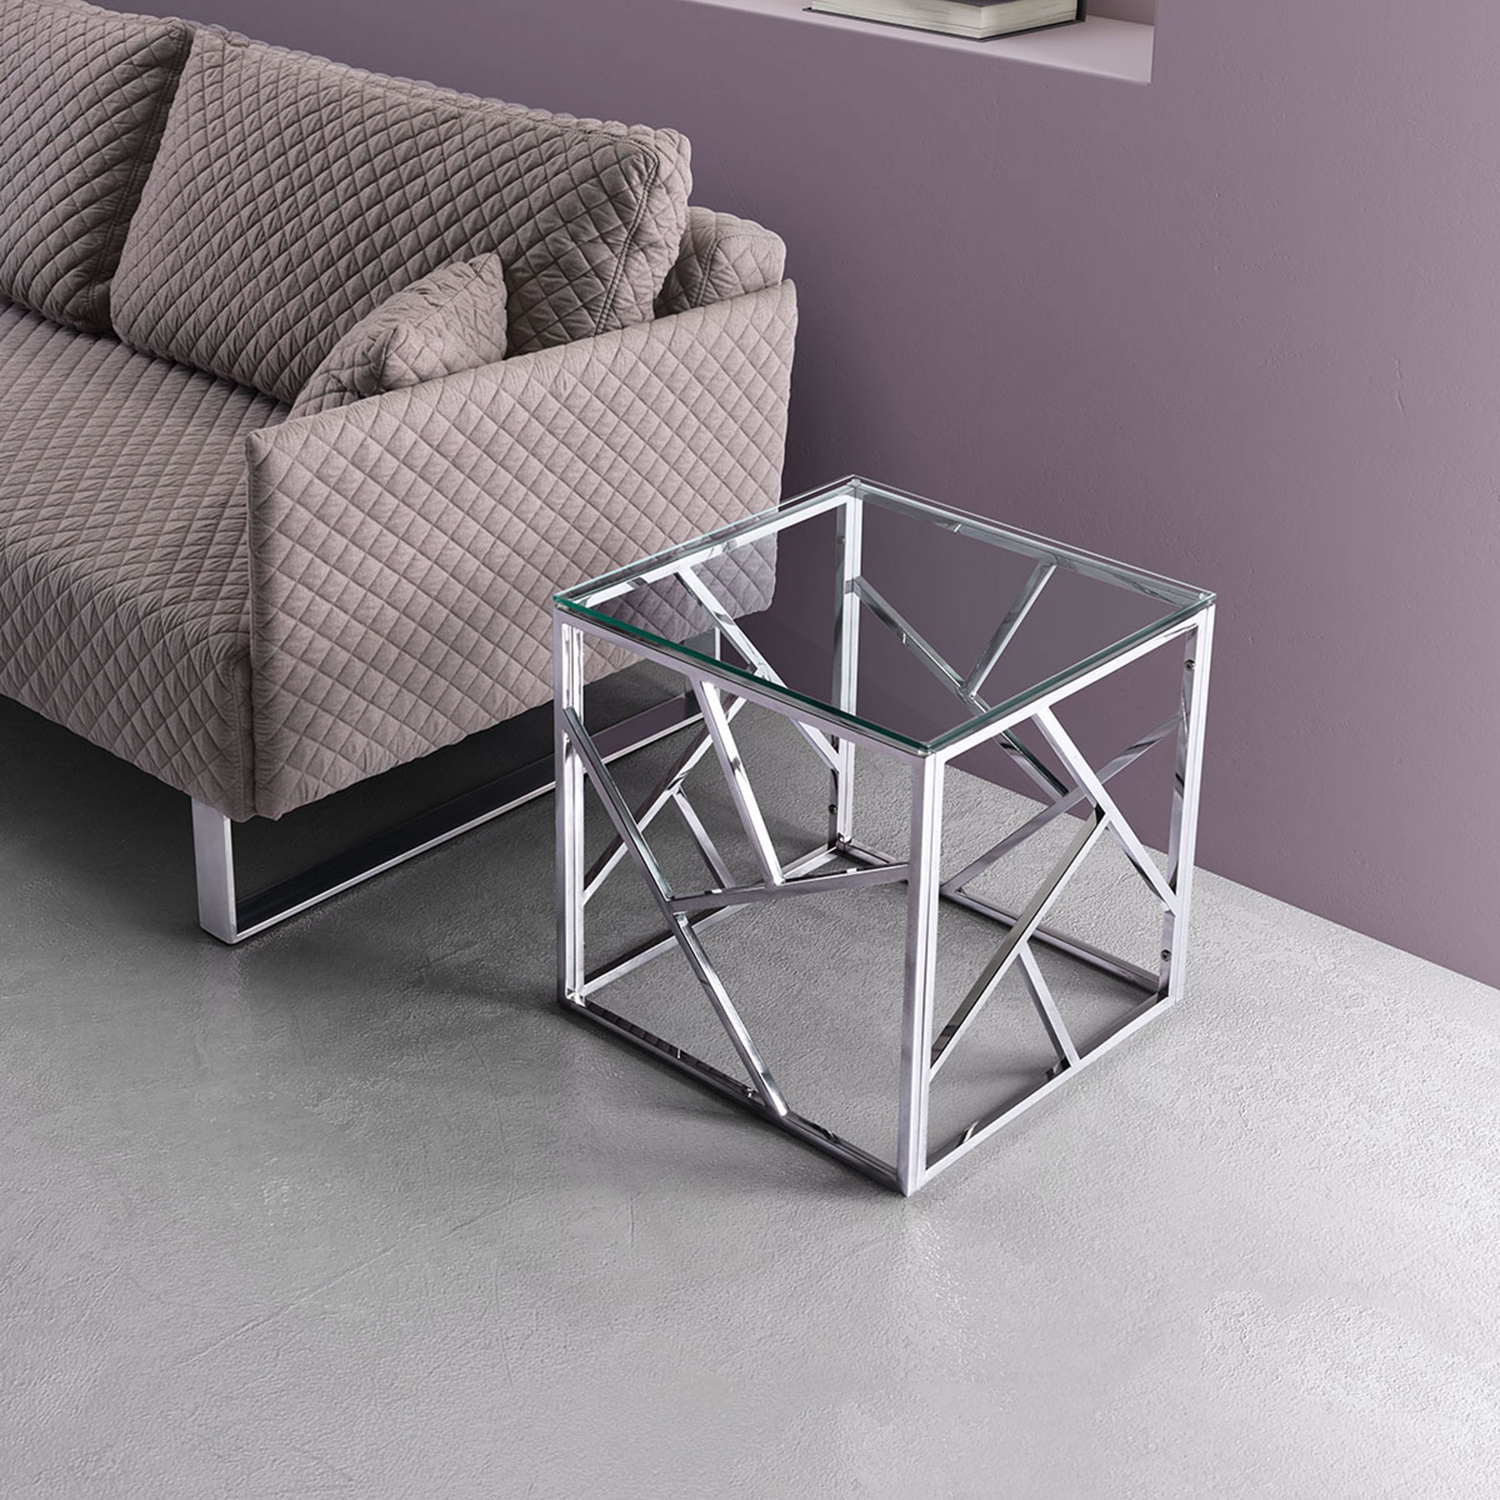 Cage Side Table - Stainless Steel - ZM-100181